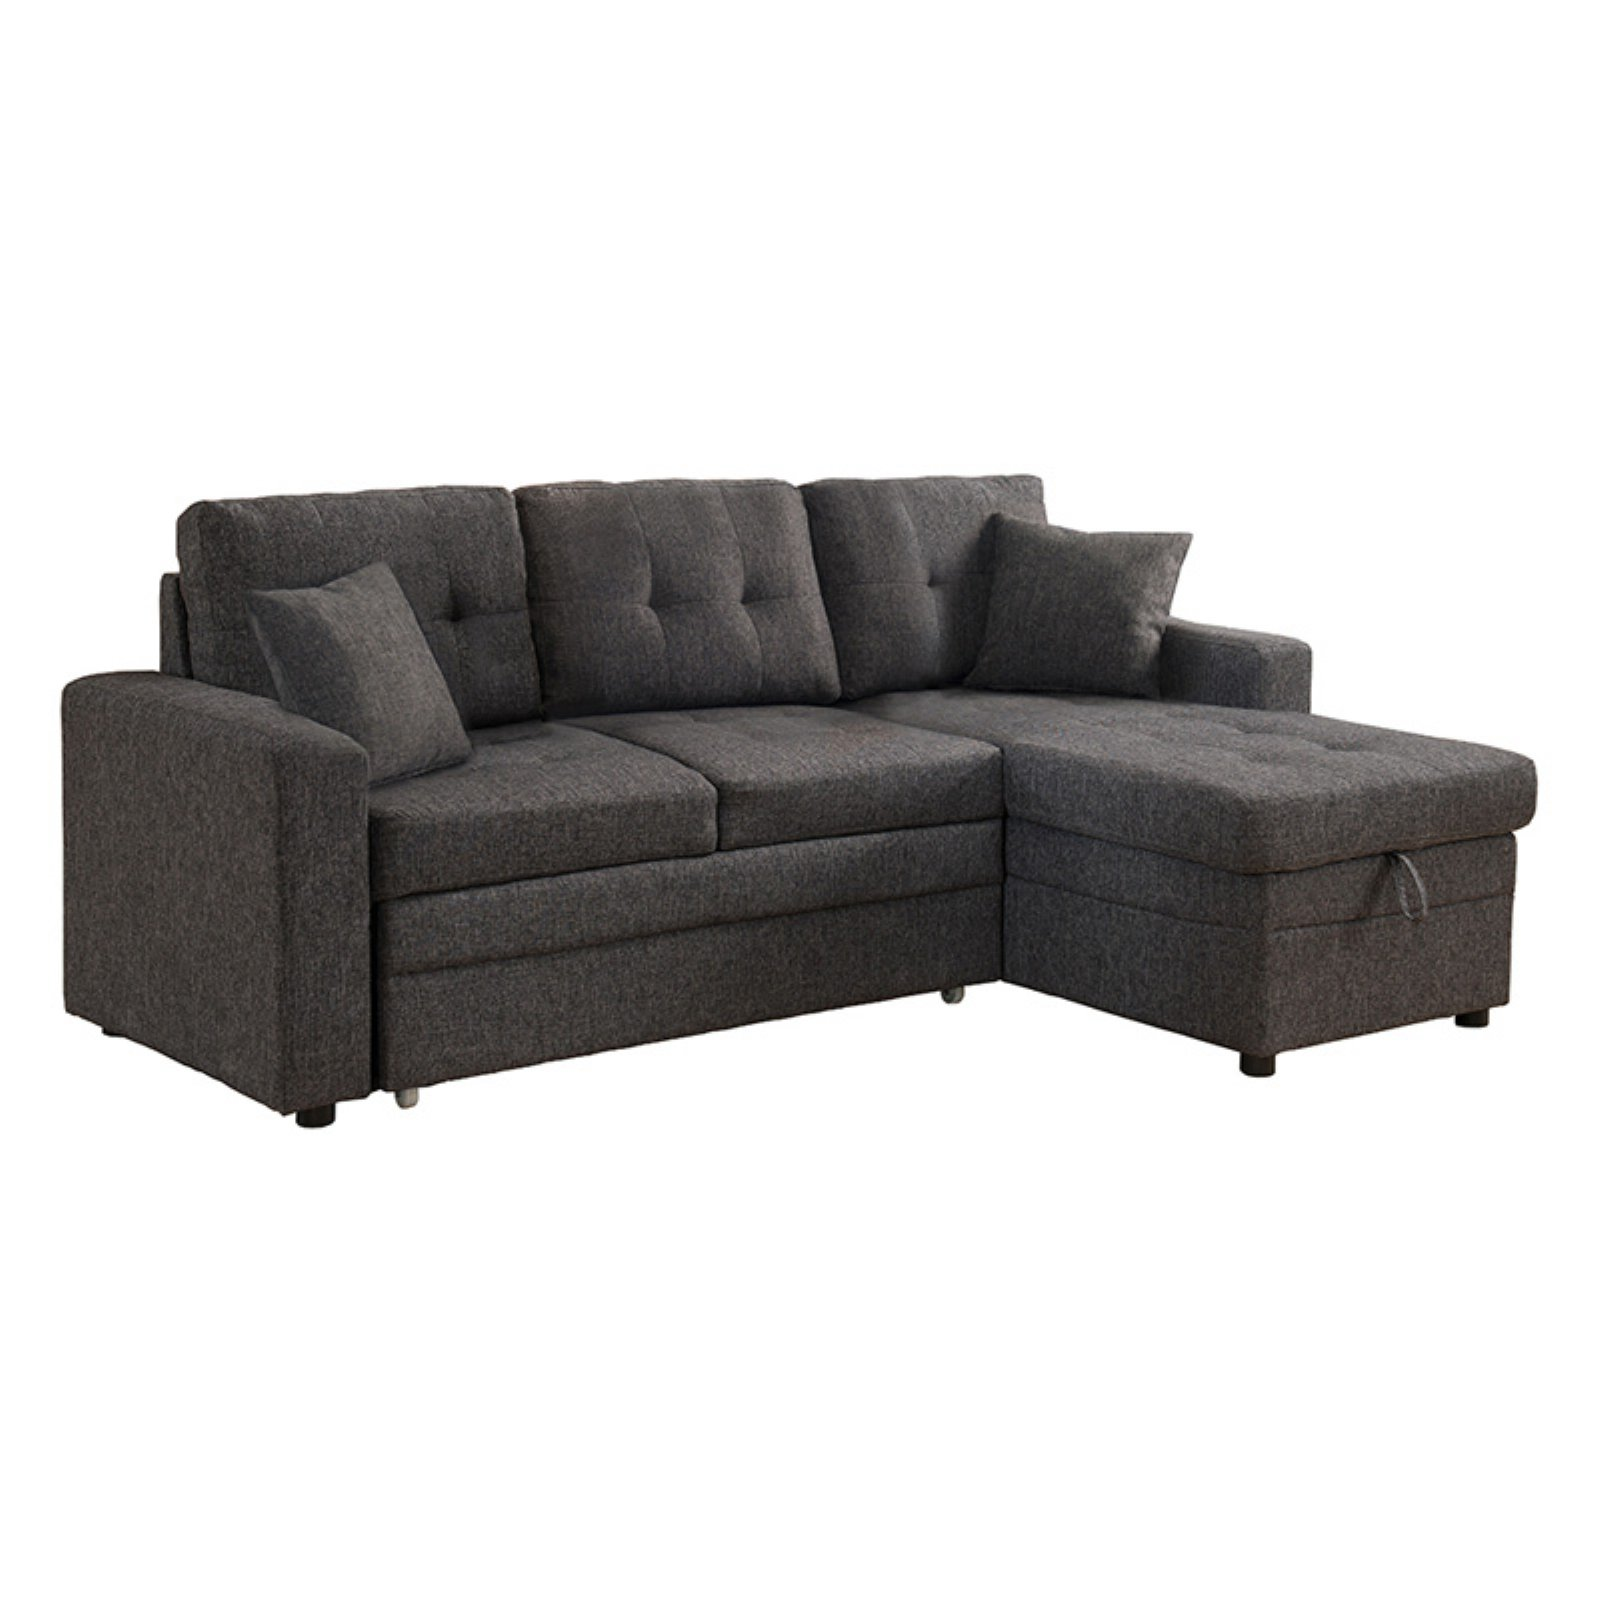 Sleeper Sofa Pull Out Furniture Small Sleeper Sofa With Pull Out